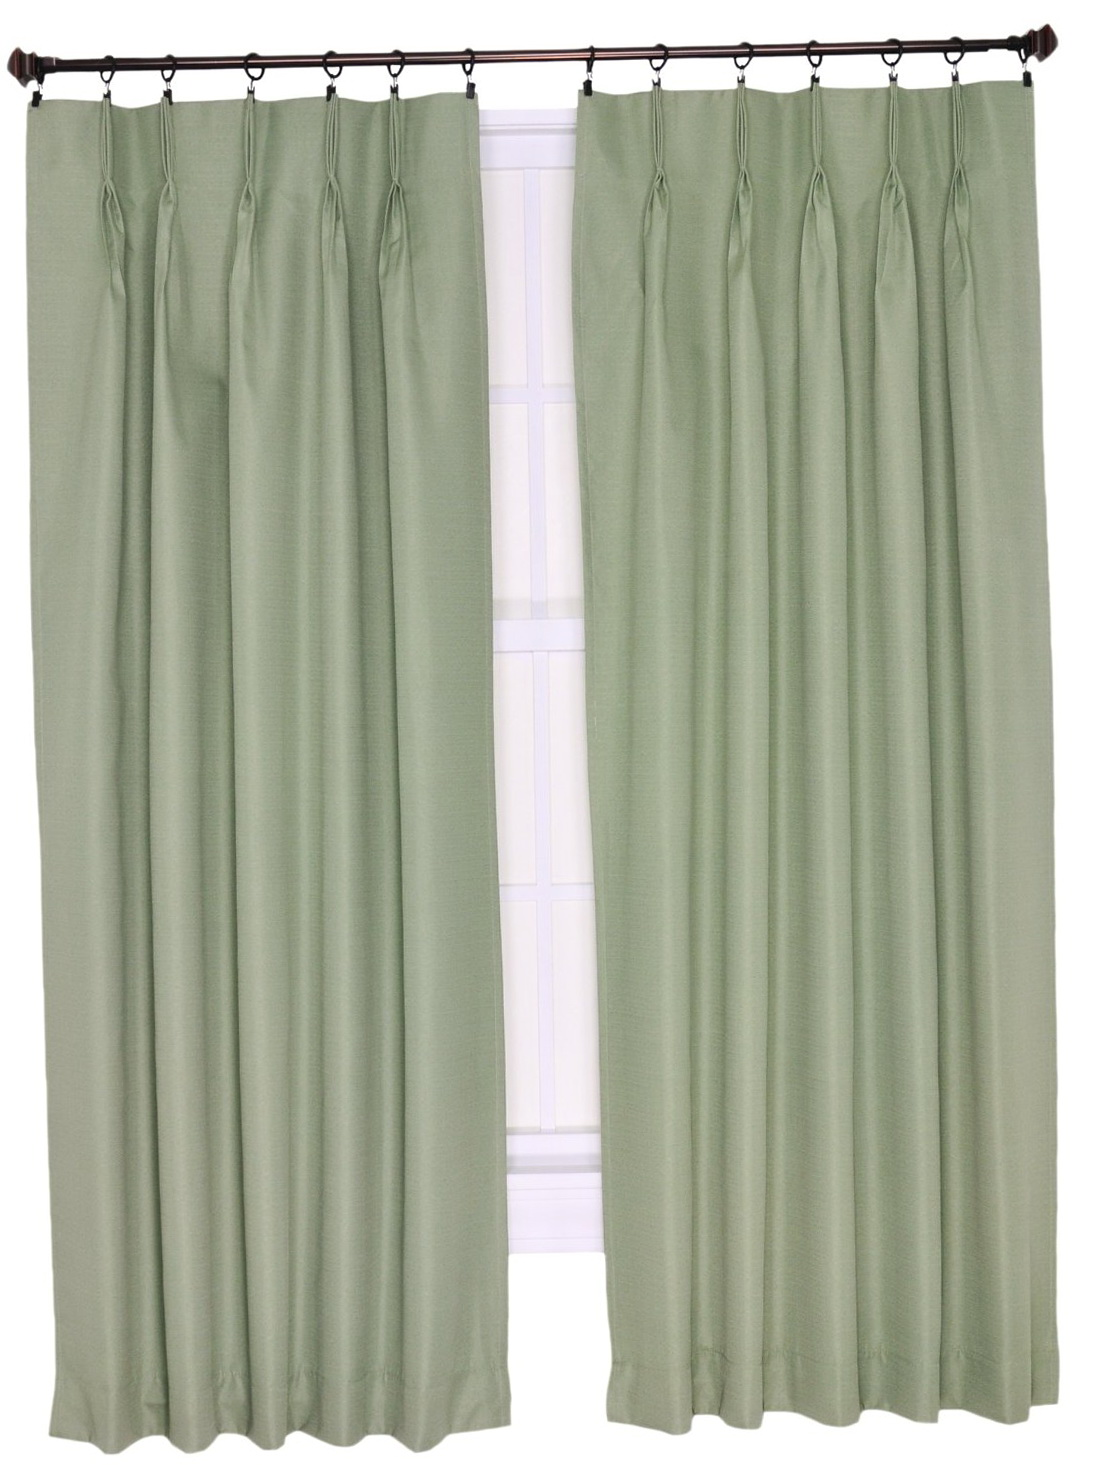 Pinch Pleated Curtains For Sliding Glass Doors Home